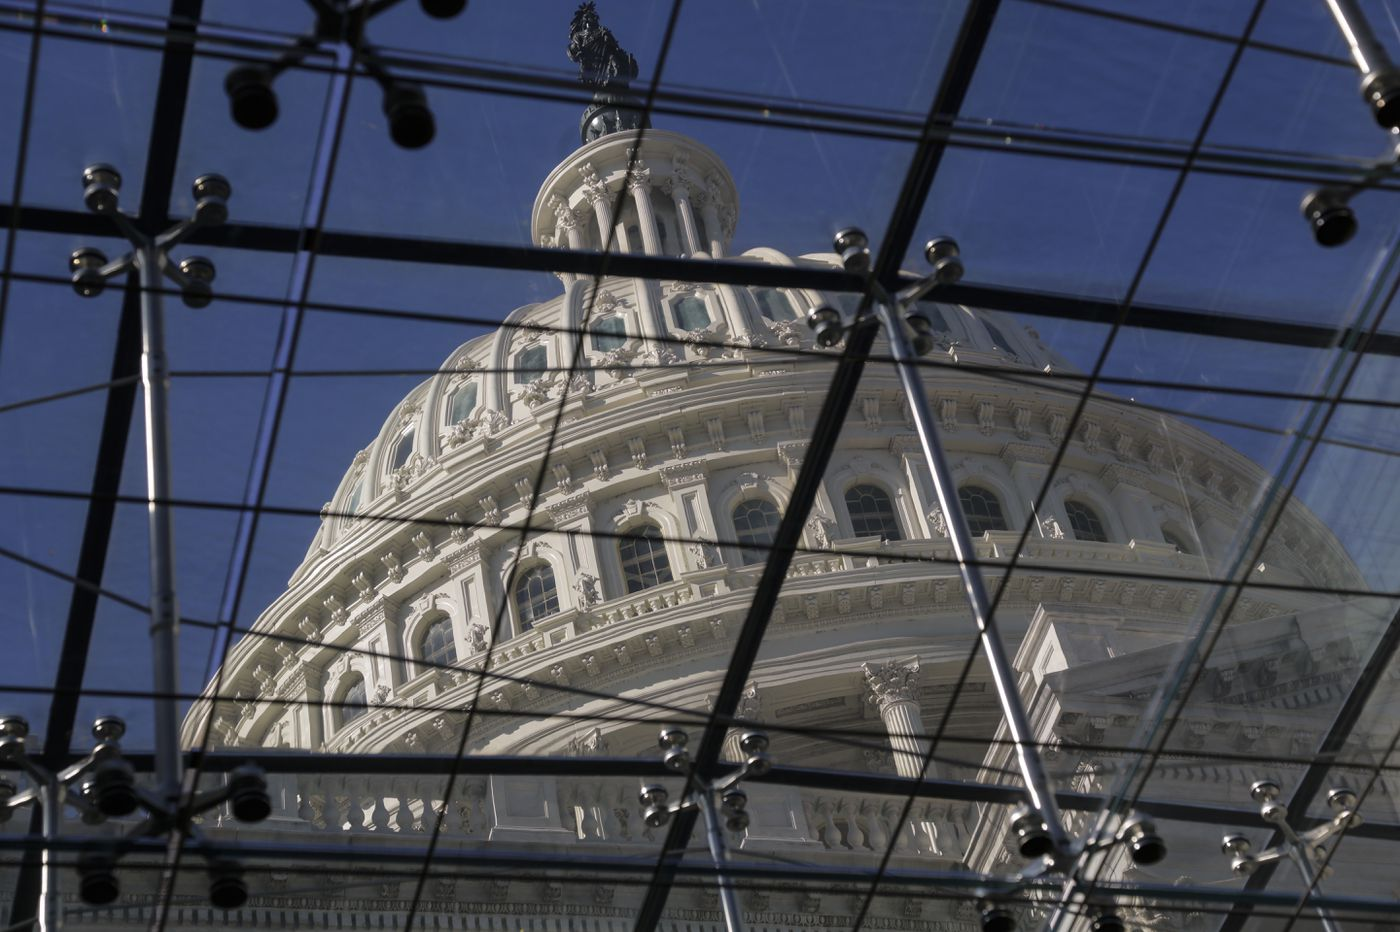 As shutdown drags, Trump administration seeks to soften blow